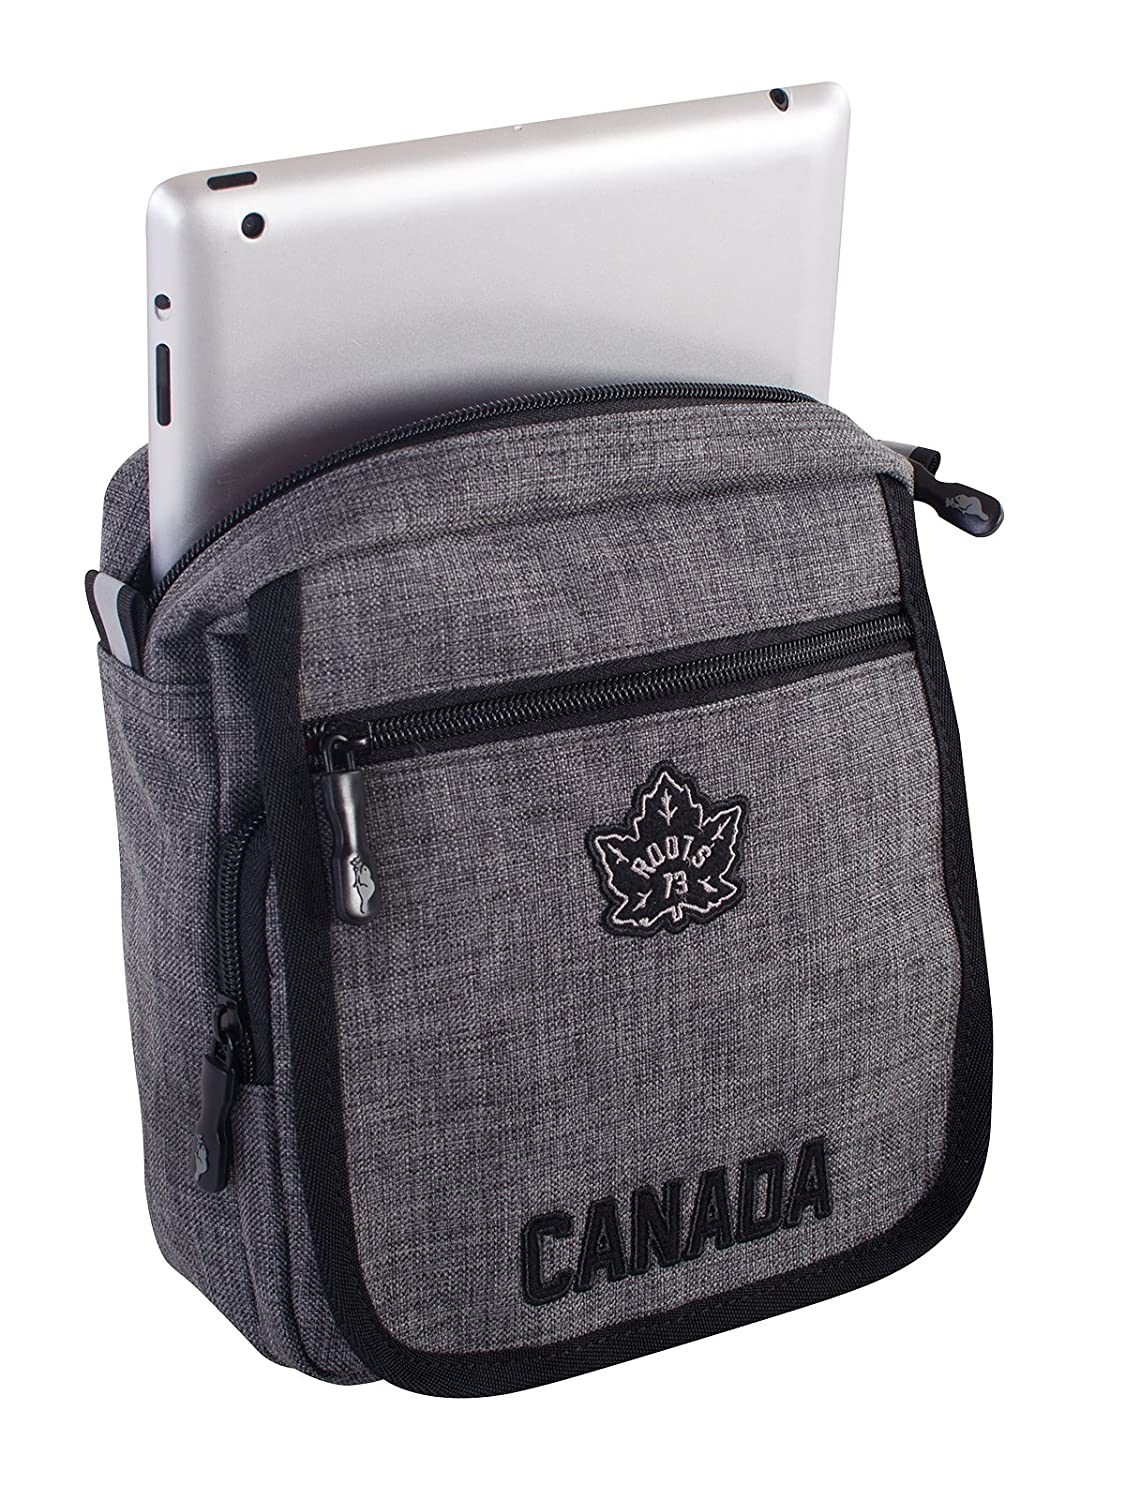 Roots 73 Travel Bag Boarding Sling Bag with RFID